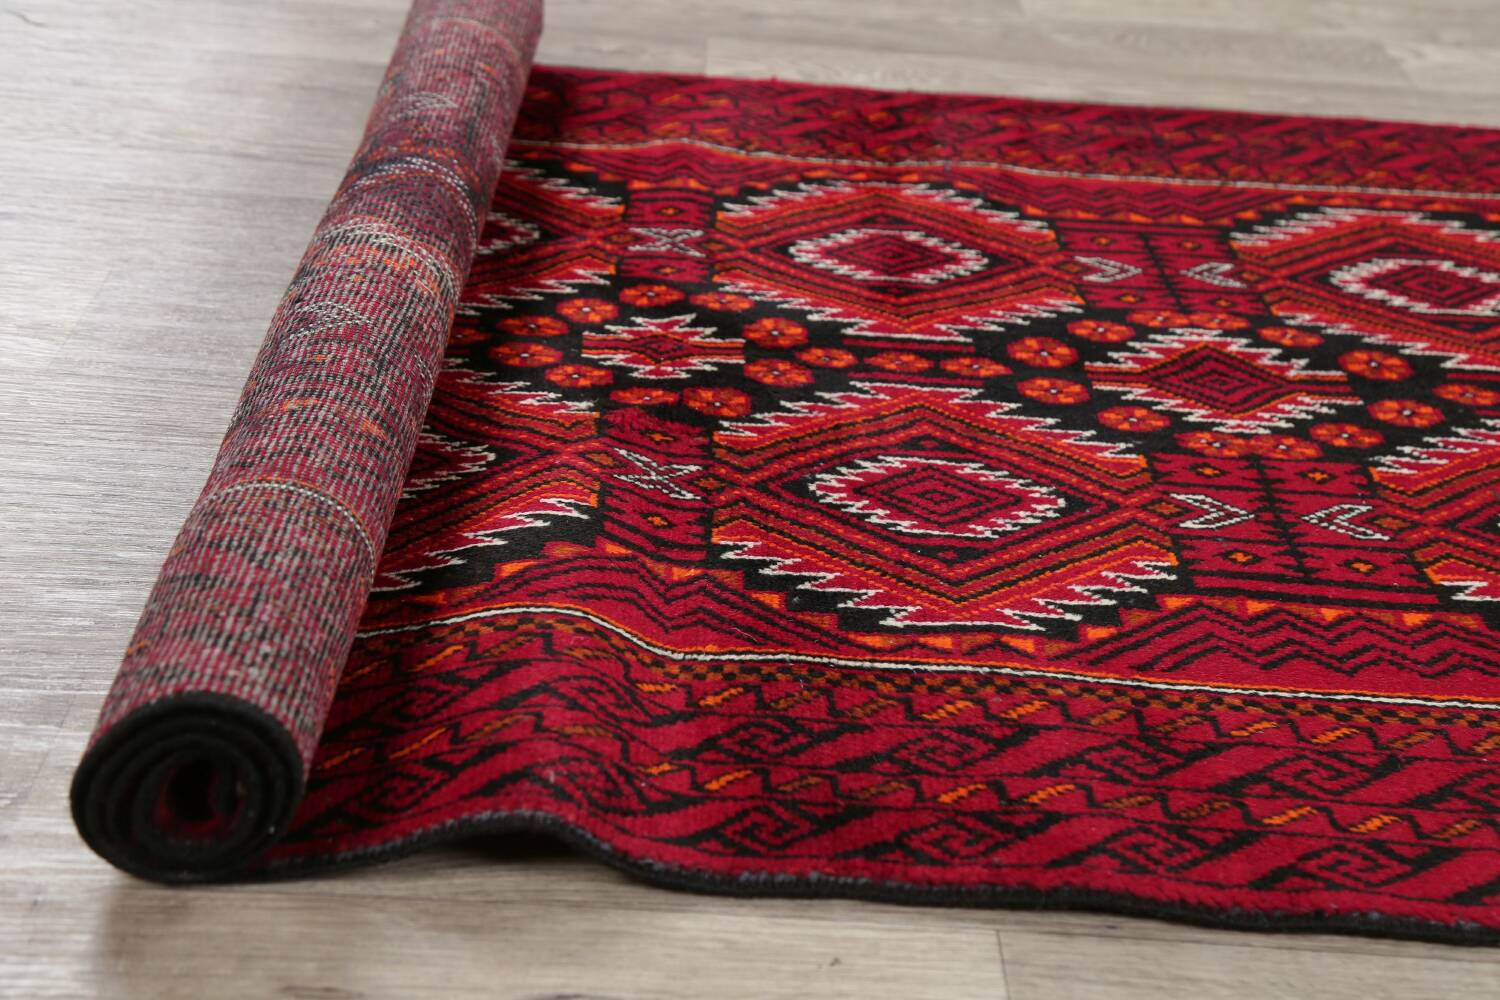 Geometric Red Balouch Persian Area Rug 3x6 image 18